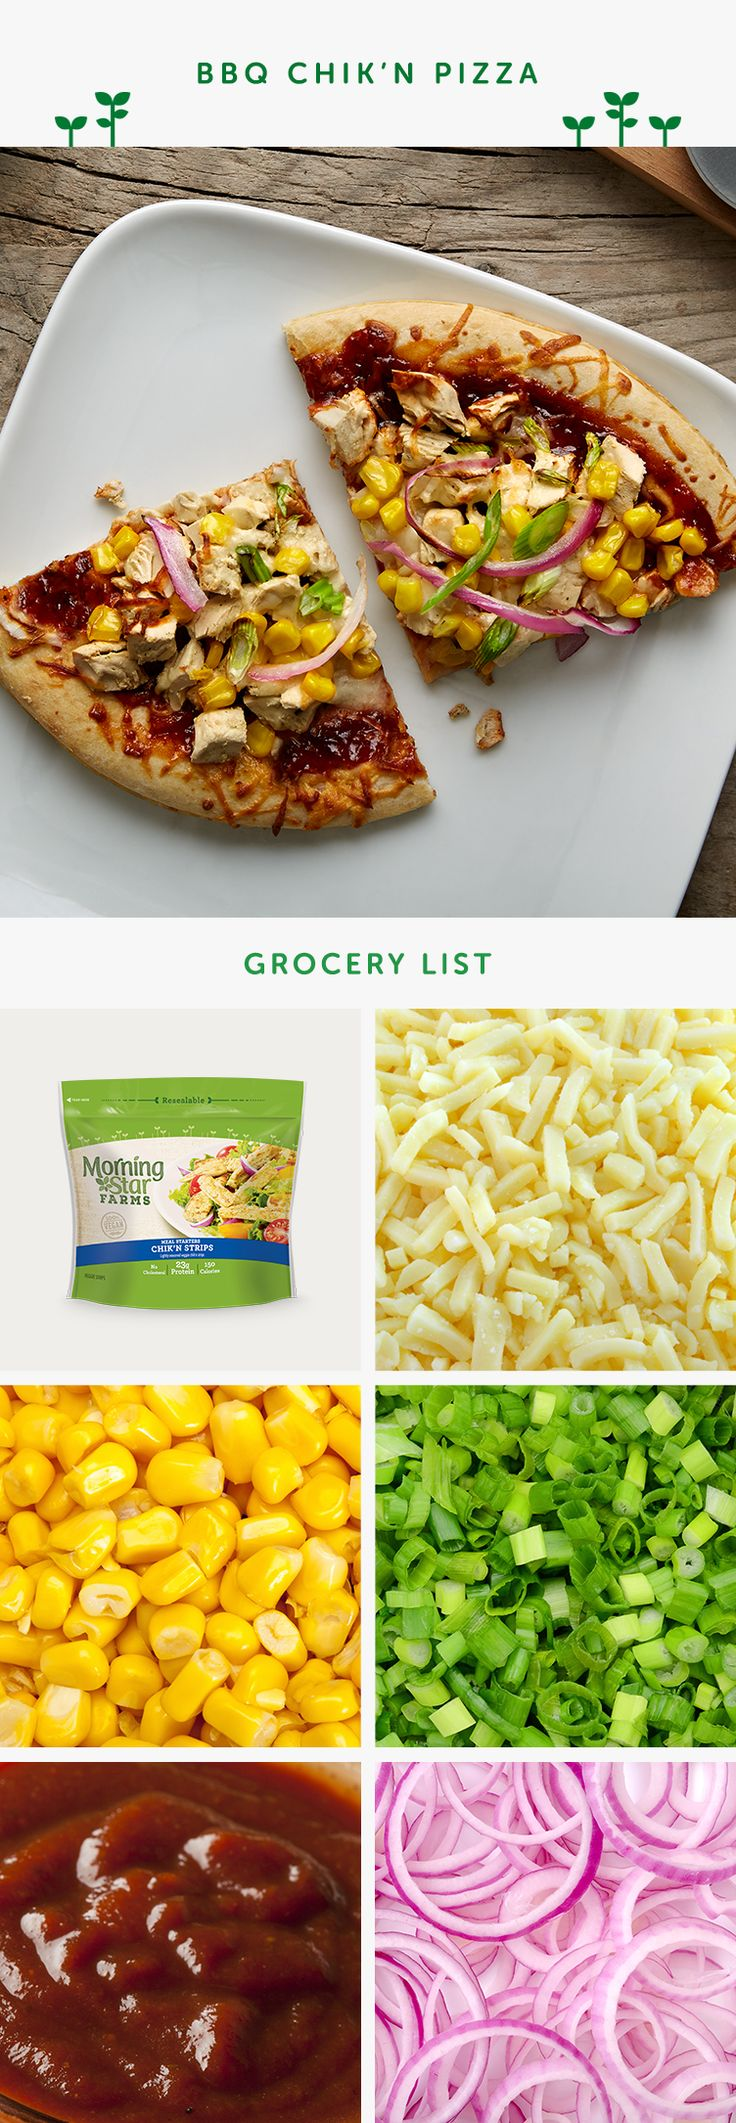 Make a quick and easy BBQ pizza using premade crust, MorningStar Farms chik'n strips, and fresh veggies.